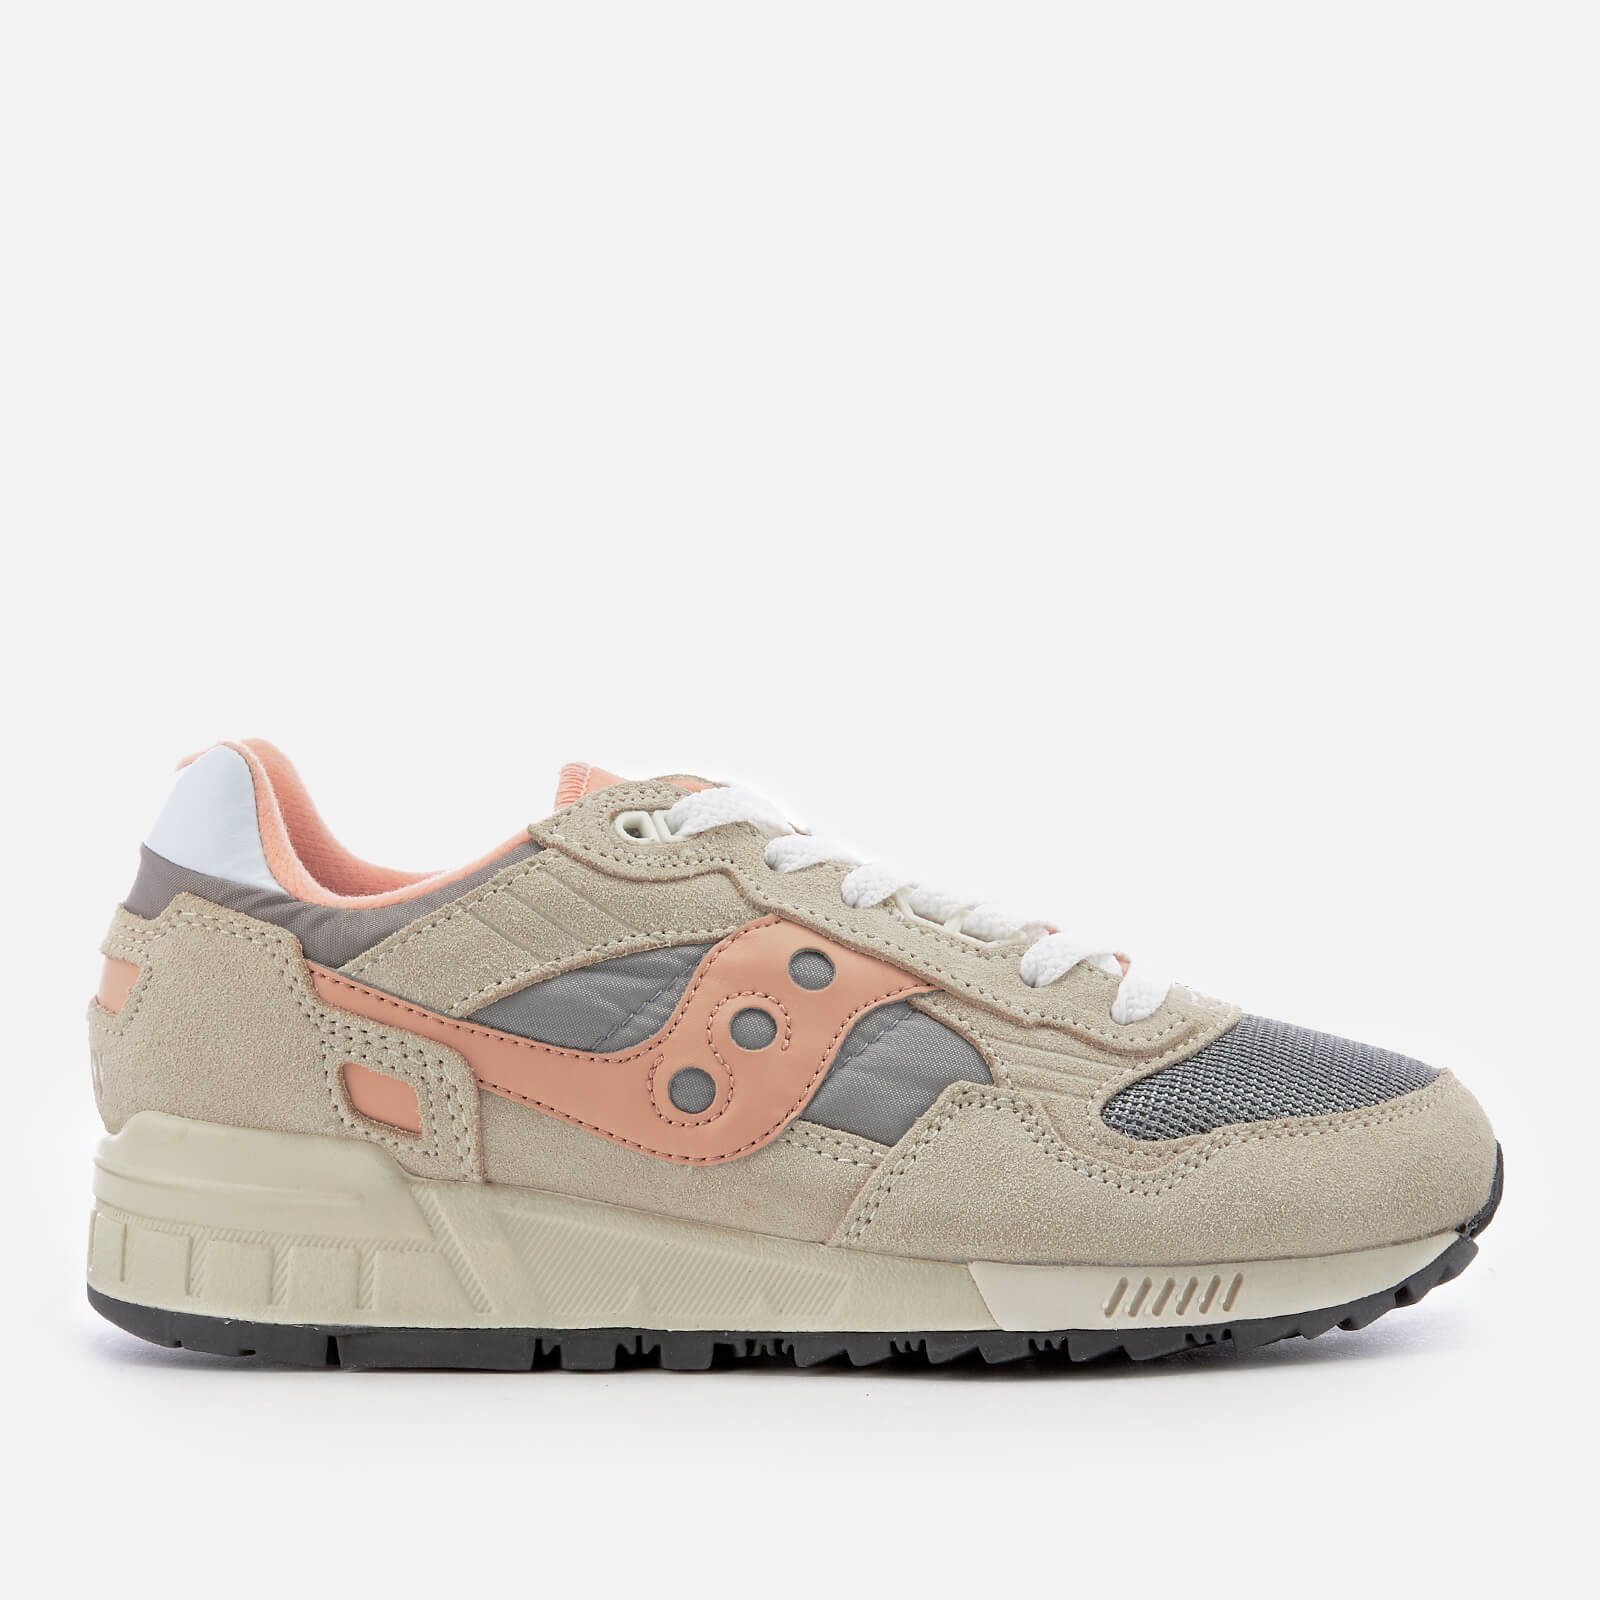 Details about Saucony Shadow 5000 Vintage Trainers Off White Grey Red 20% OFF!